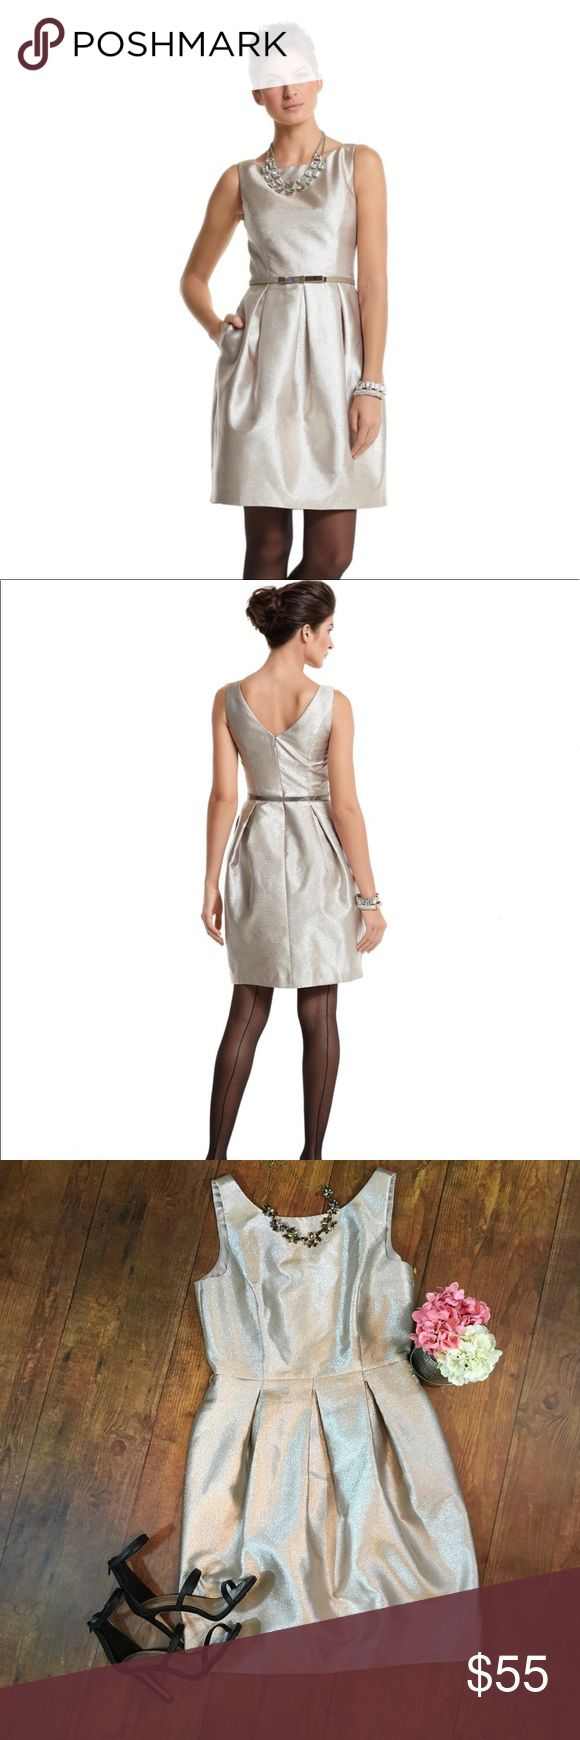 WHBM Gold Tulip Skirt Dress White House Black Market *Belt not included* Celebrate in the shimmer of soft champagne gold. This glamorous cocktail dress channels Holly Golightly sophistication with pockets and a bateau neckline that changes to a drop-V in back. Also shown with the Gold Glitter Bow Skinny Belt, not included. Shell: 87% Polyester, 13% Metallic. Lining: 96% Polyester, 4% Spandex. Dry clean. Imported. White House Black Market Dresses